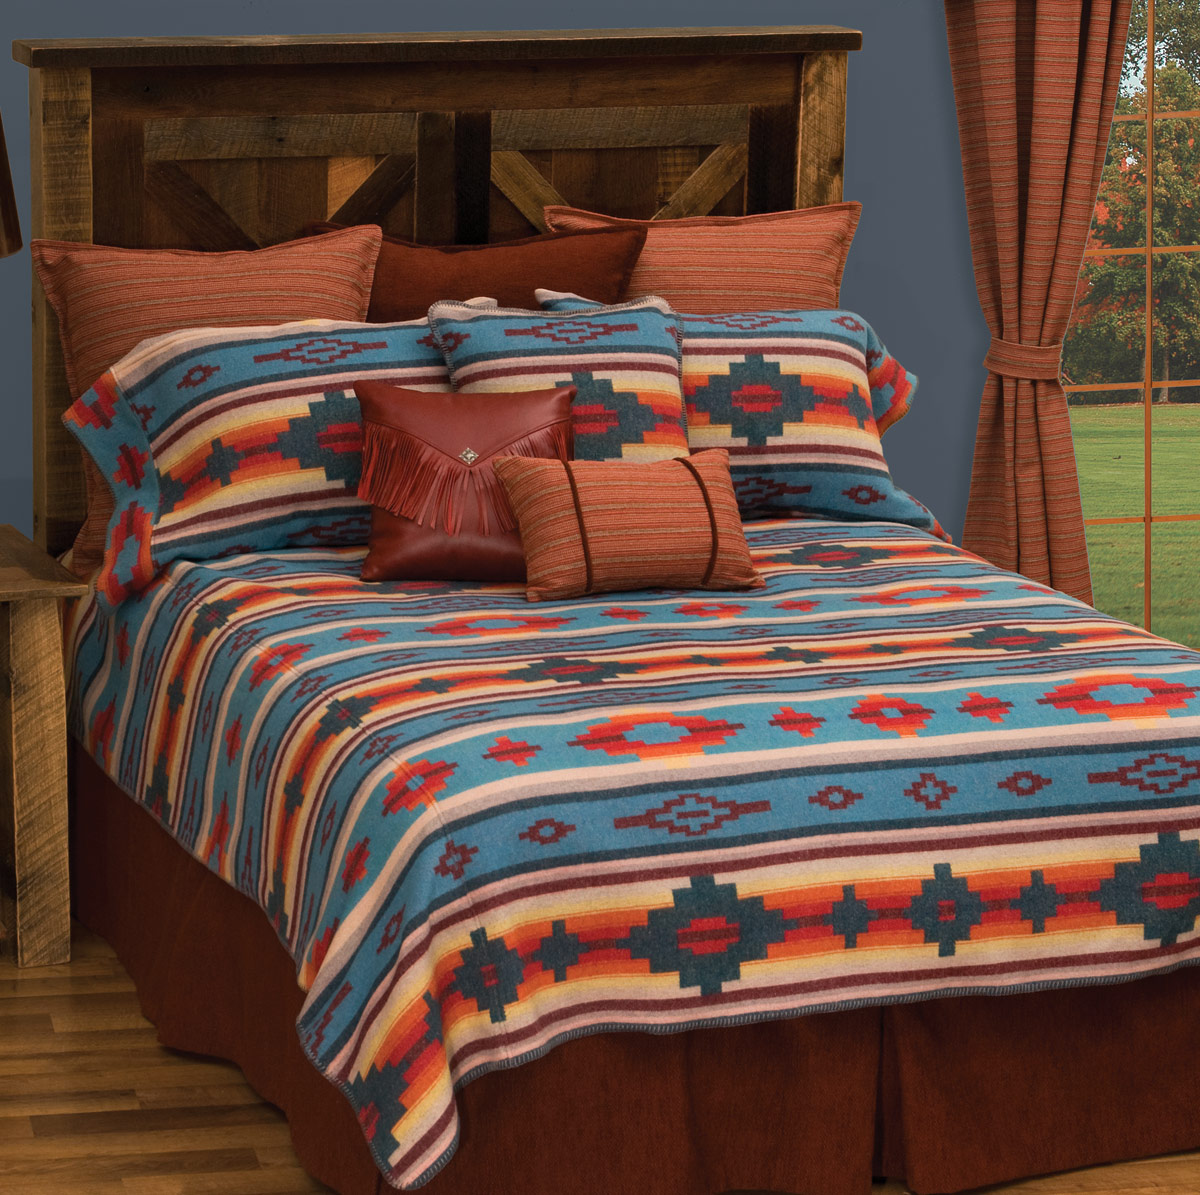 Crystal Creek Basic Bed Set - Full